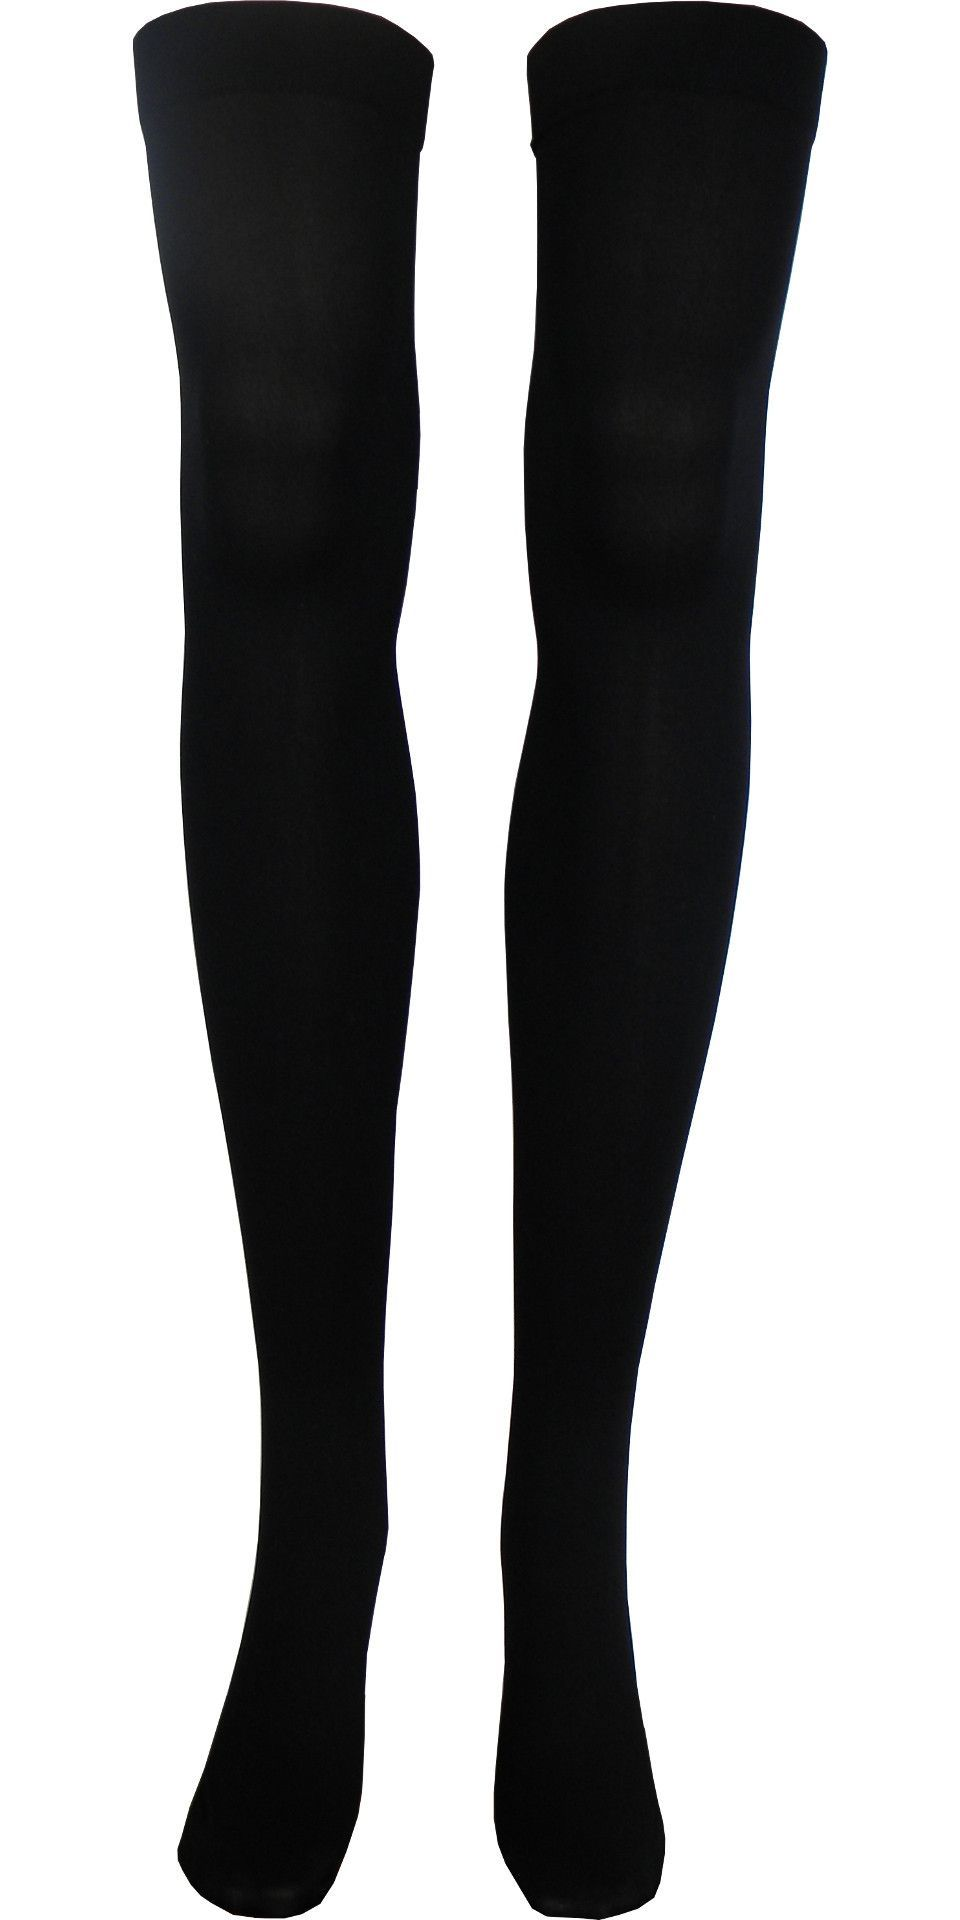 607e10c20bb Solid Opaque Thigh High Socks in Black - Black   regular